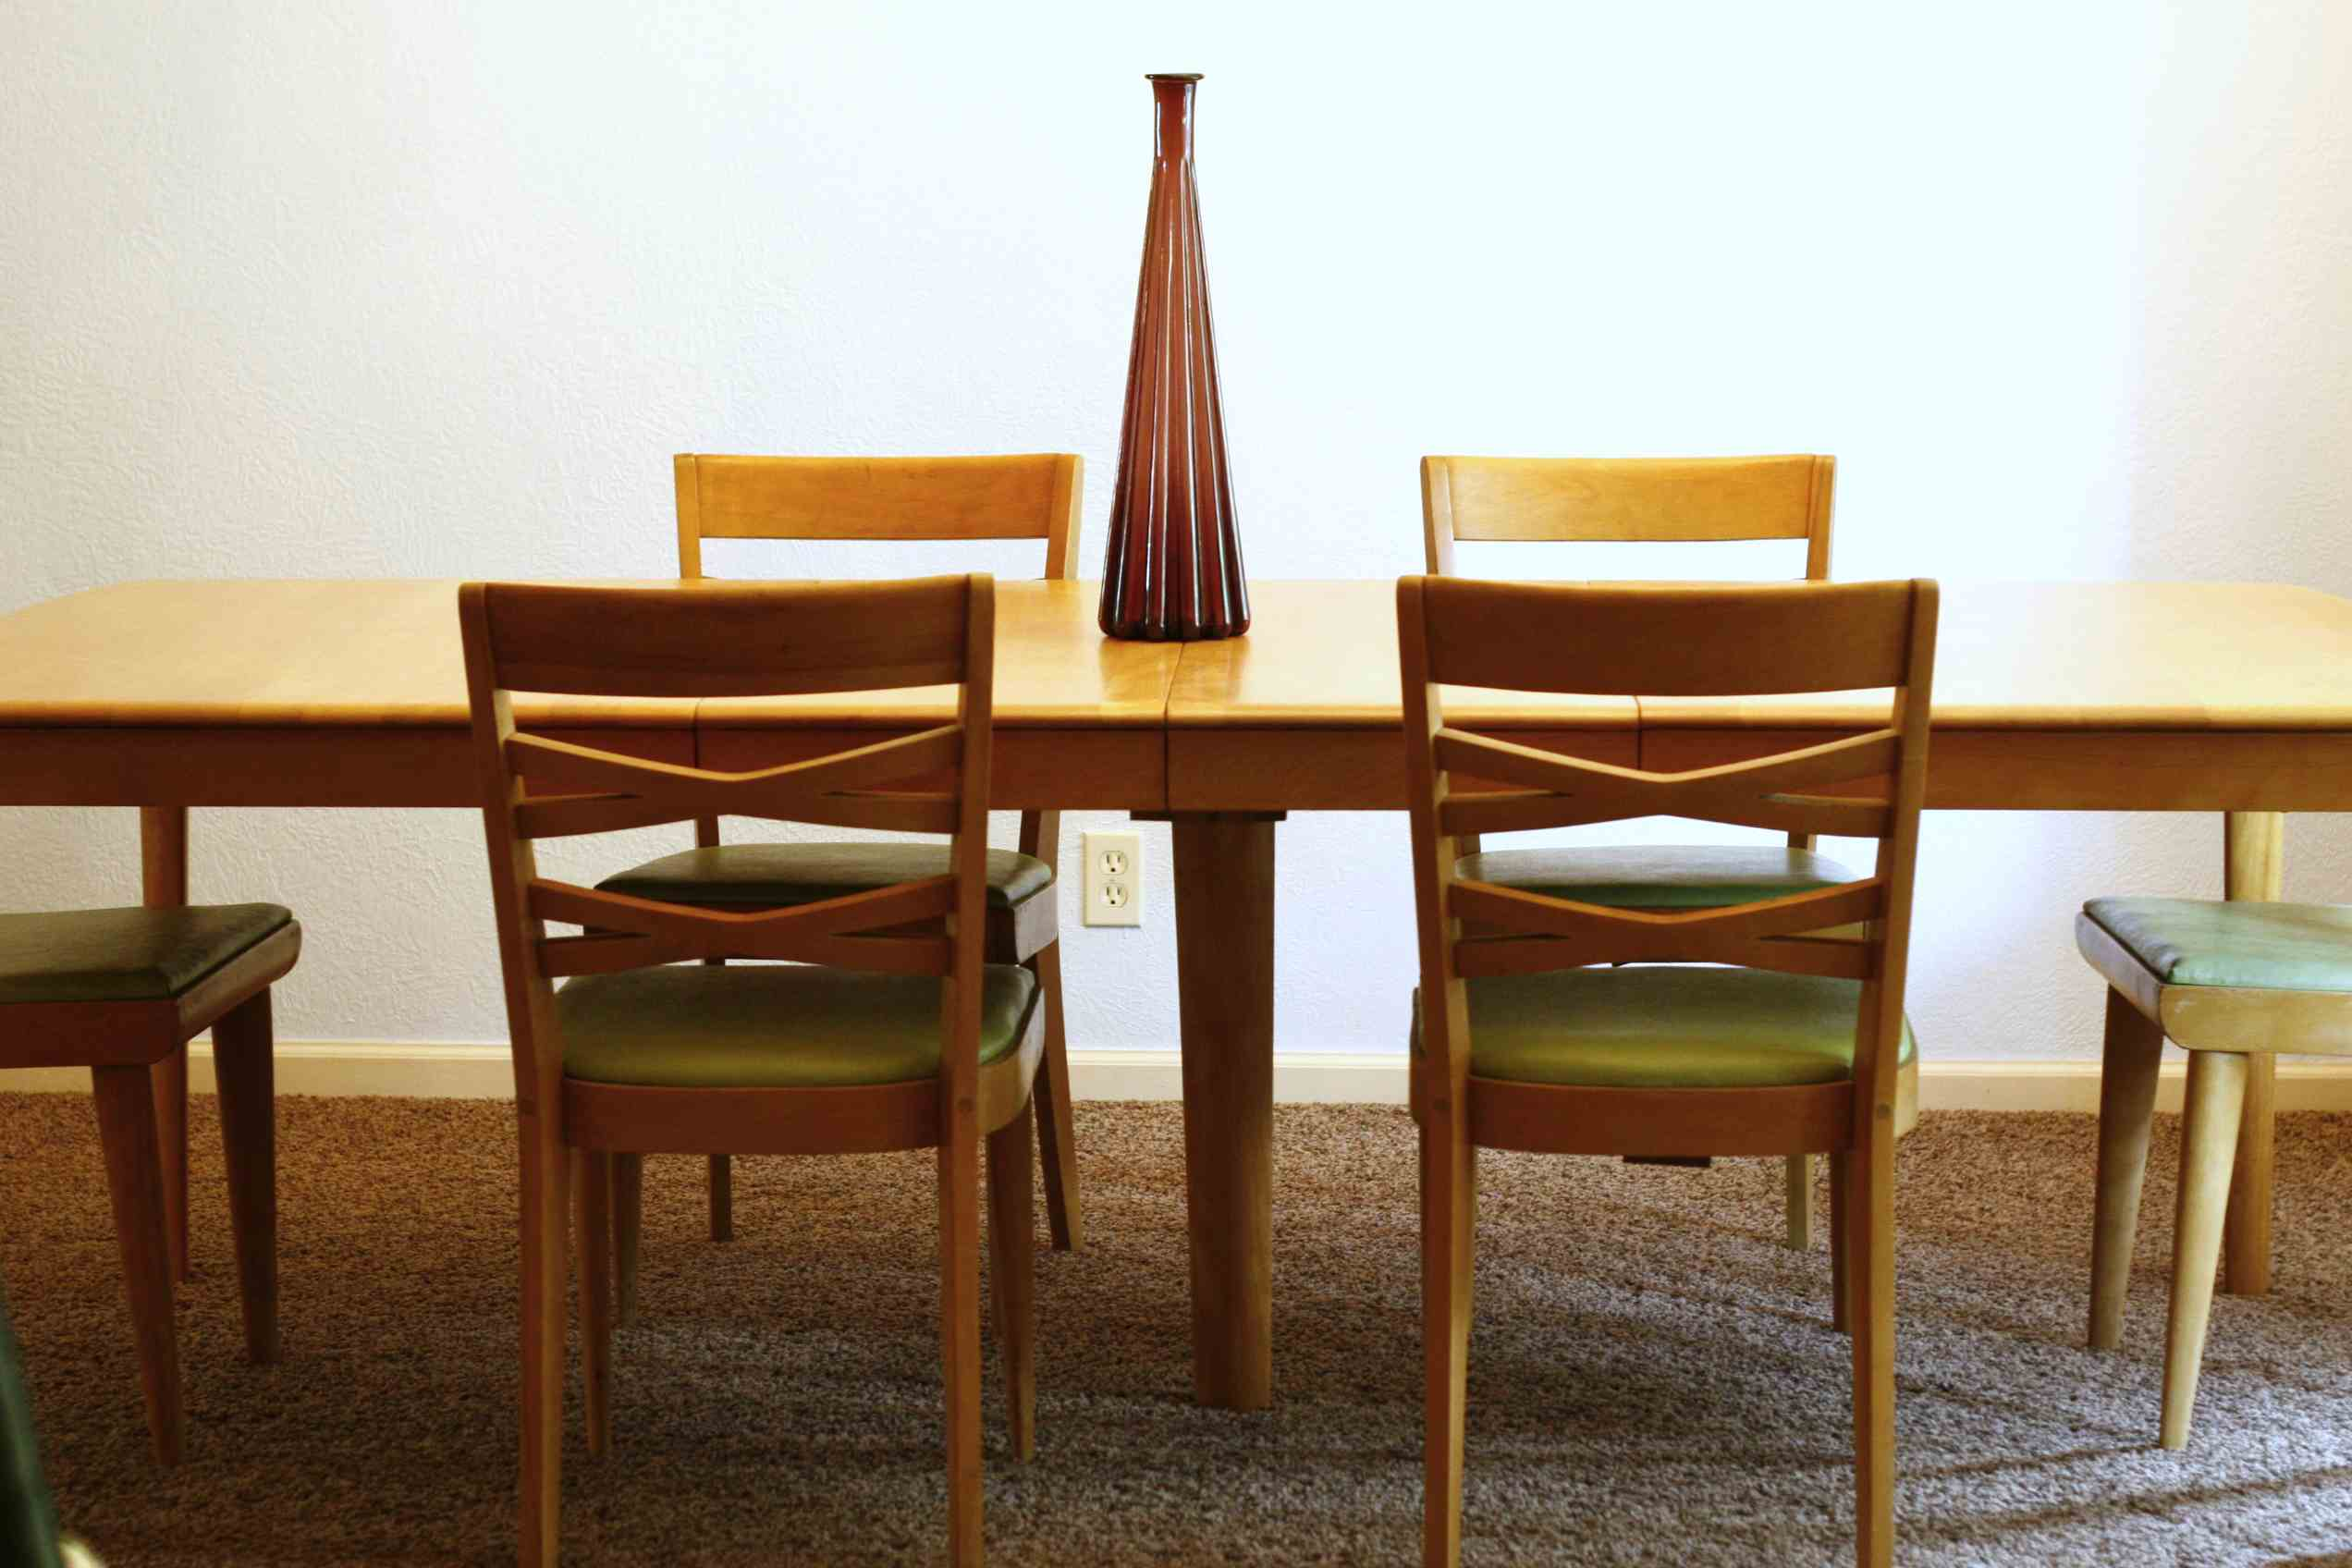 Heywood Wakefield Dining Chairs Hey Heywood Your Table S Ready Fort Worth Vintage